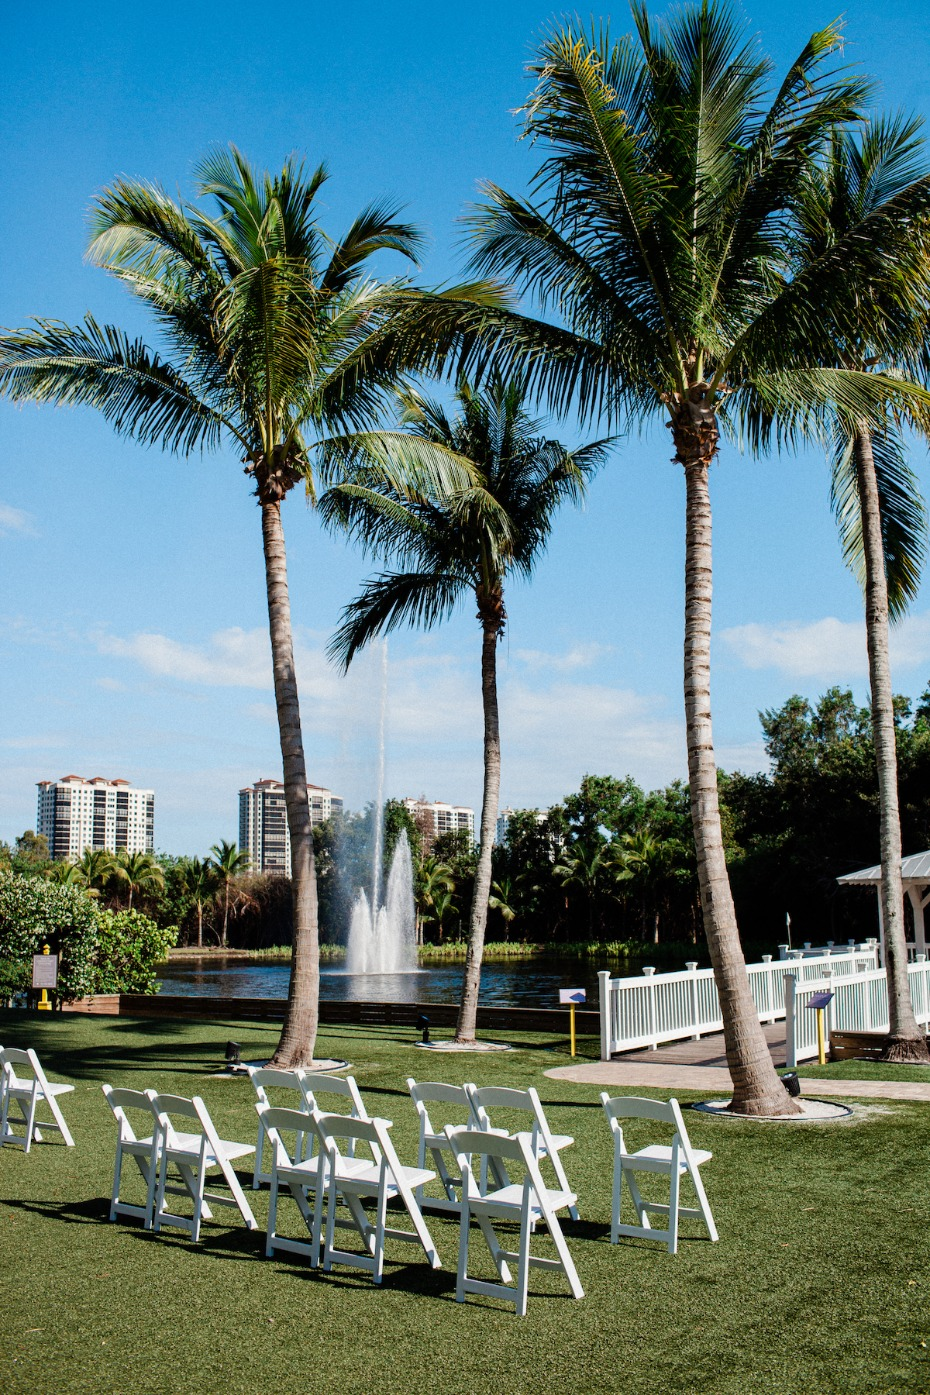 Tousled Hair, Don't Care: The Beaches of Fort Myers & Sanibel Will Do It for You When You Say 'I Do'